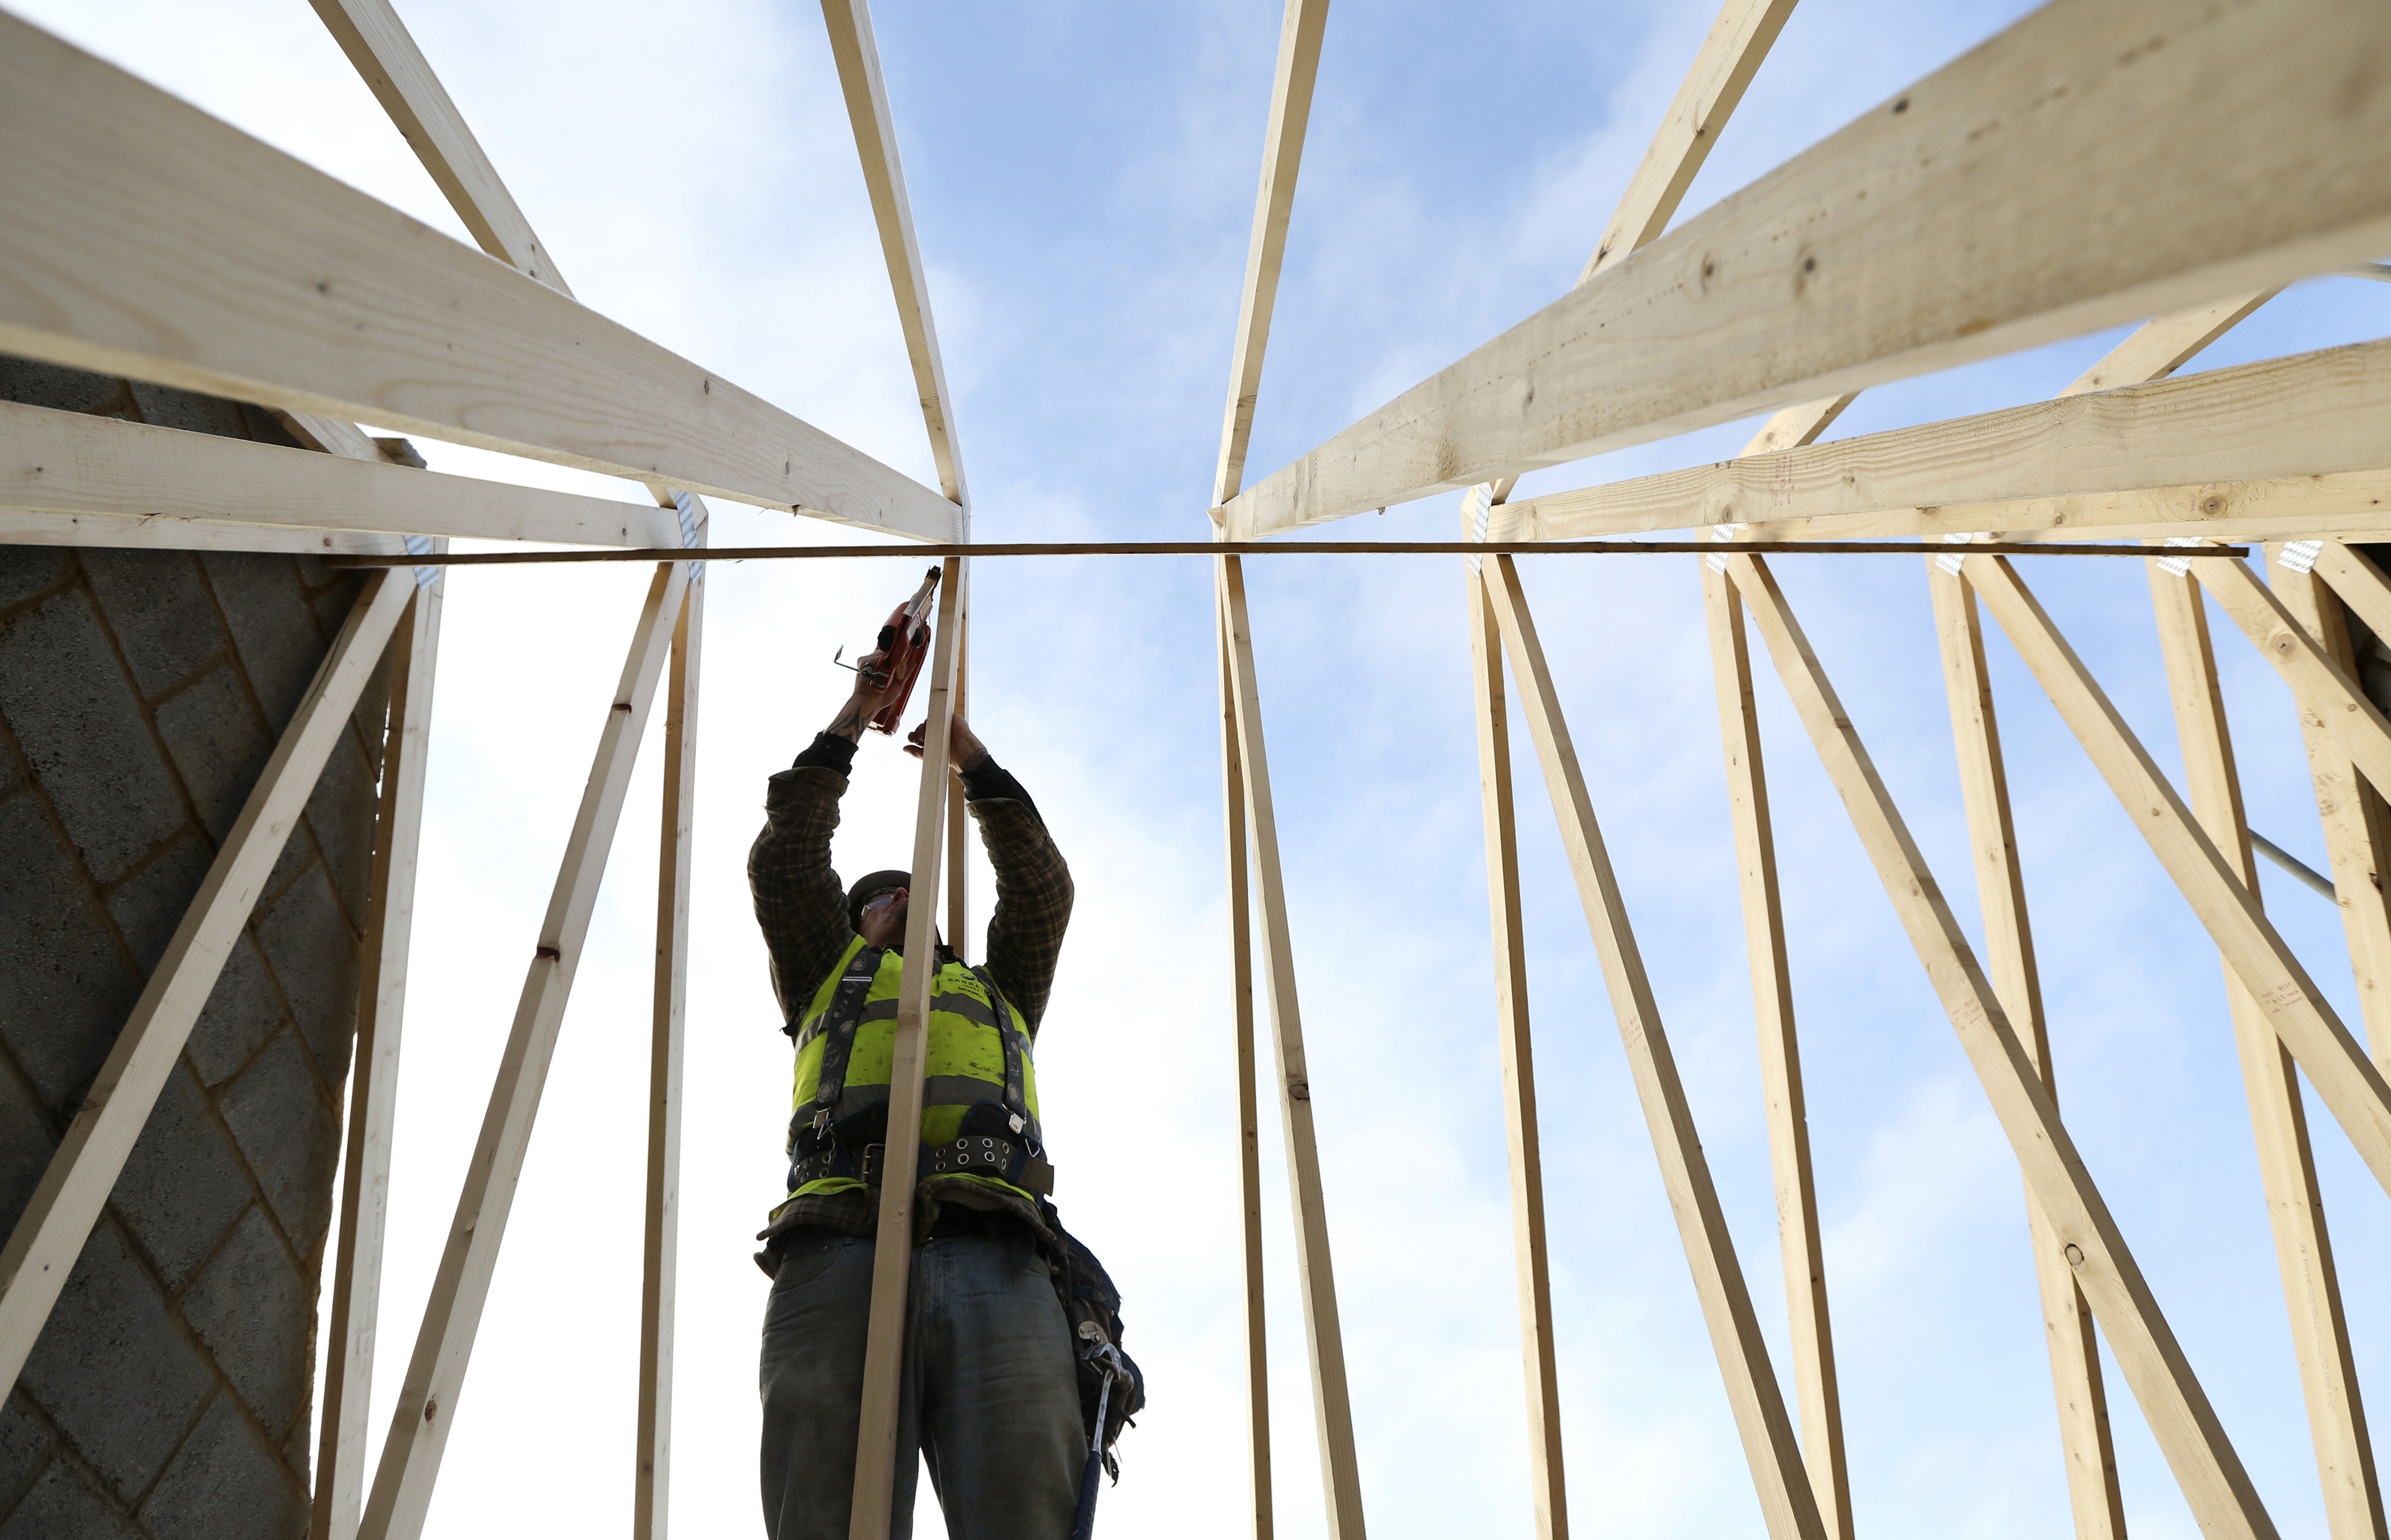 Despite all the extra costs, it can still be significantly cheaper to build your own house rather than buy a new one